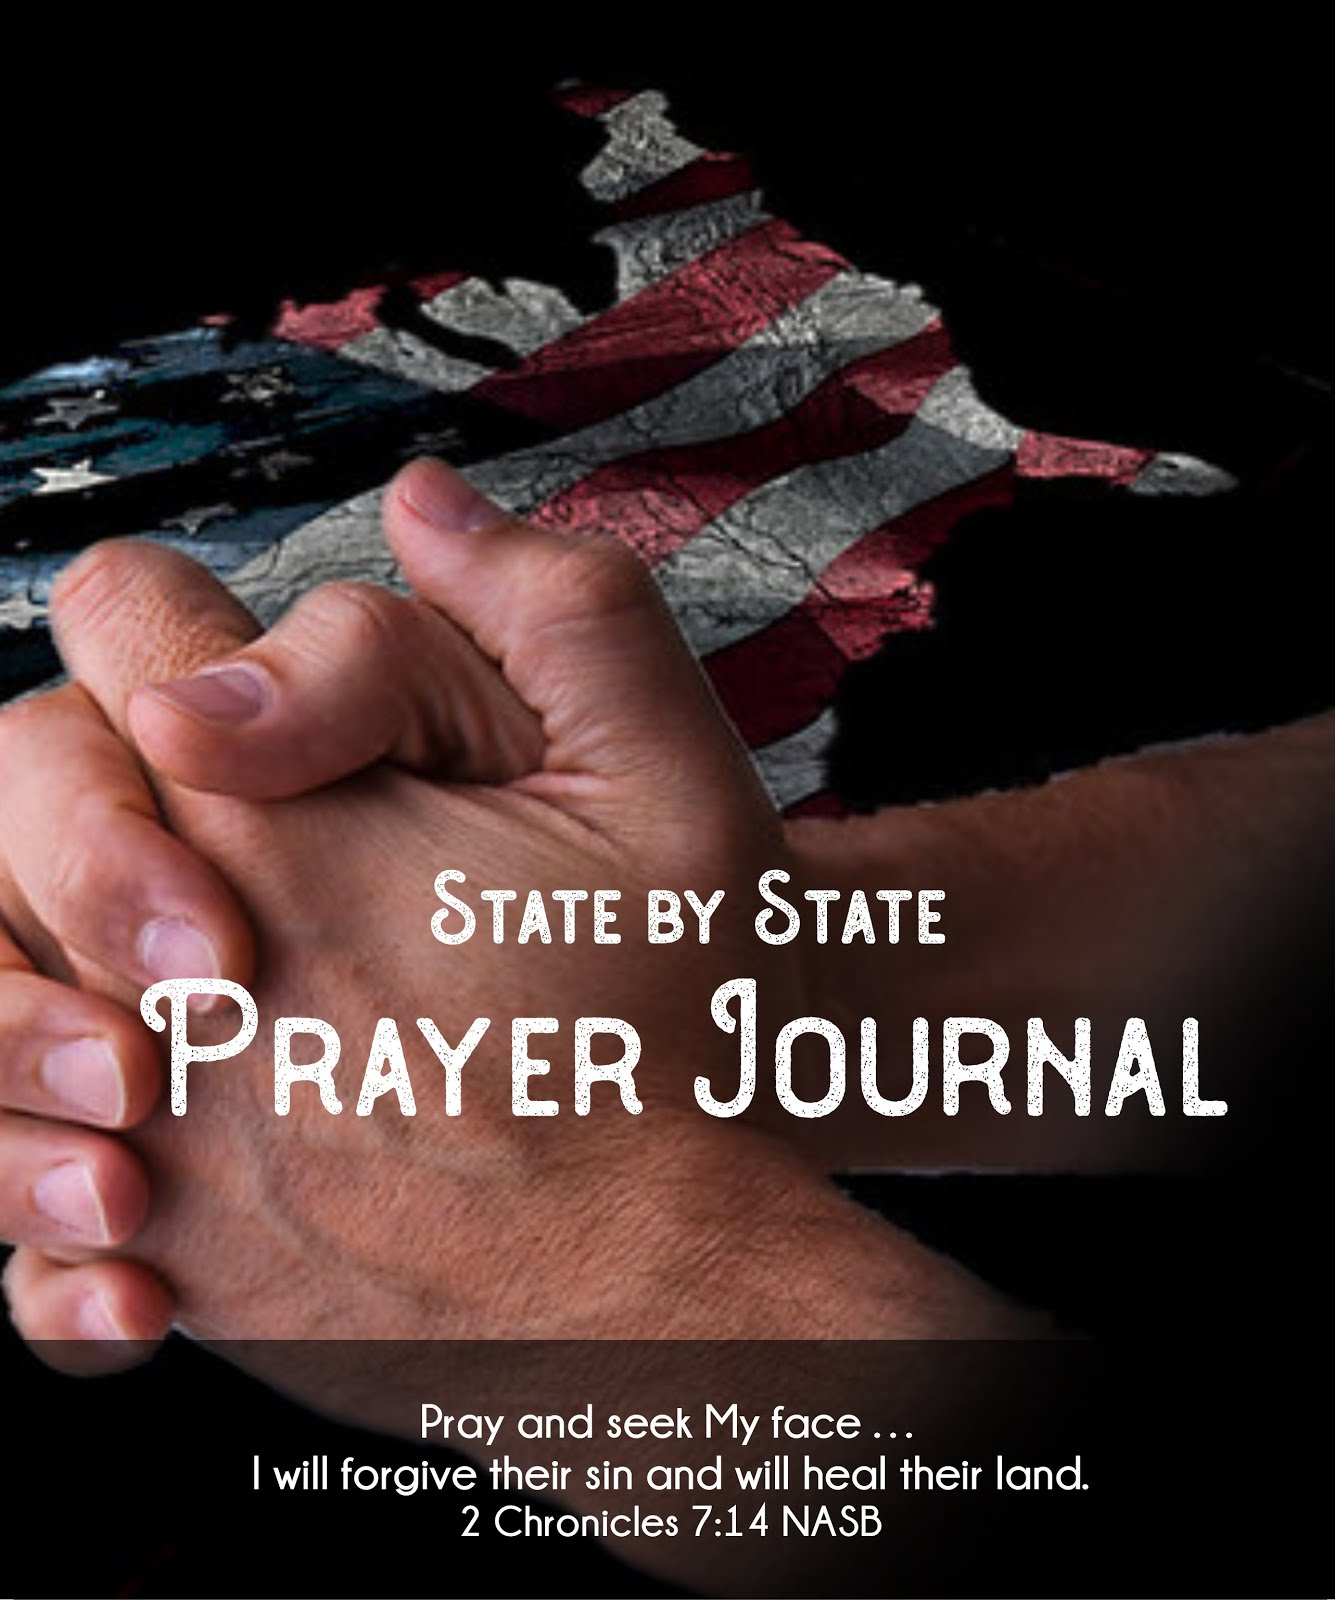 State by State Prayer Journal